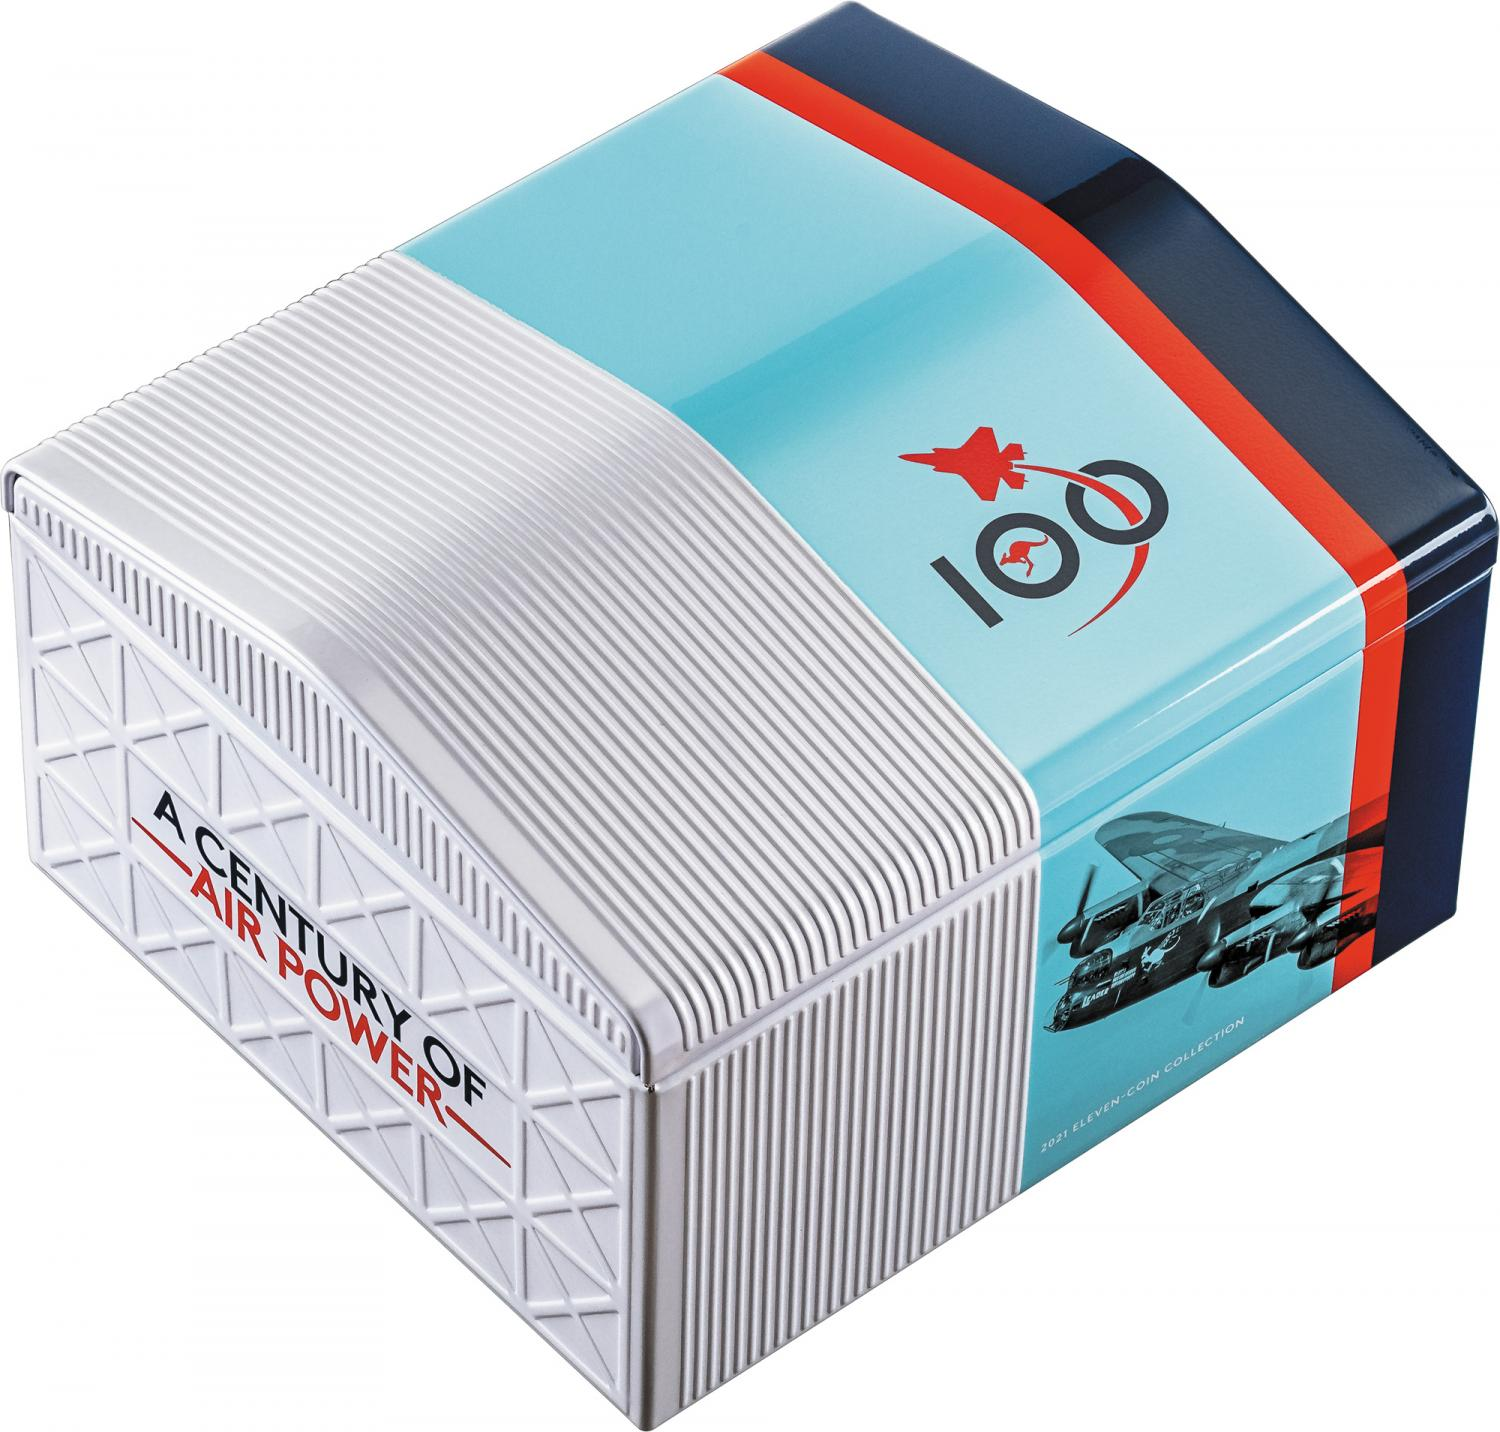 Thumbnail for 2021 Coloured 50 Cent Centenary of the Royal Australian Air Force - 11 Coin Collection